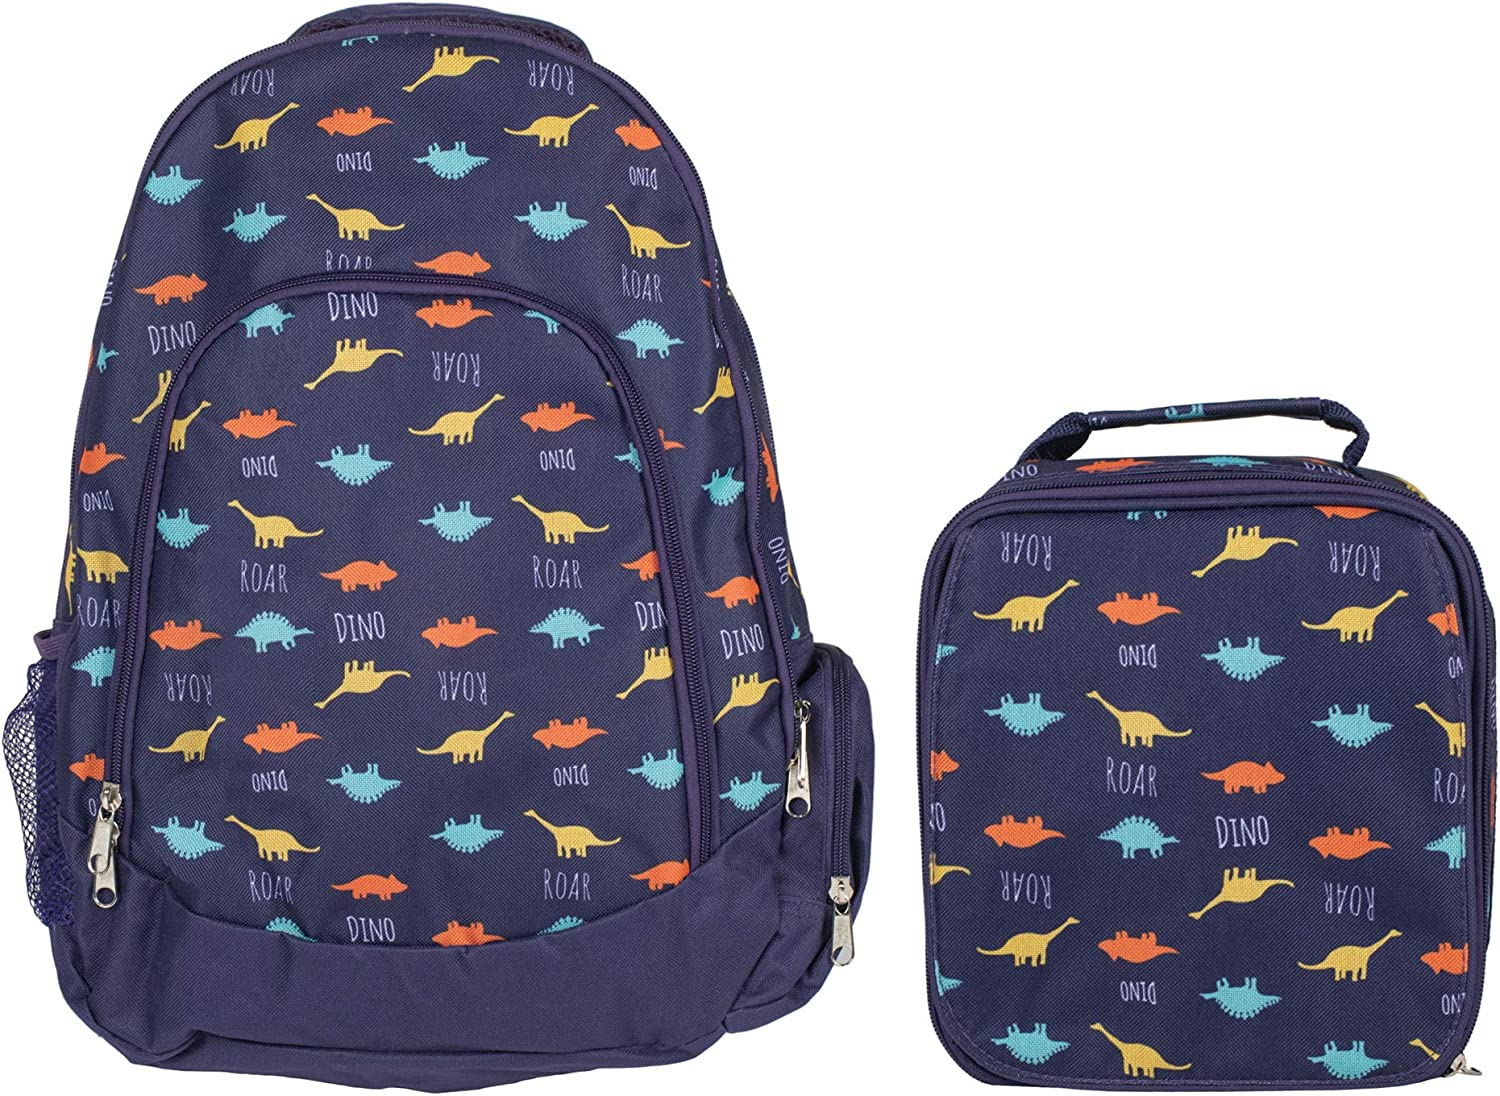 Dinosaur Navy Blue Boy's Insulated Polyester Blend Backpack and Lunchbox Set